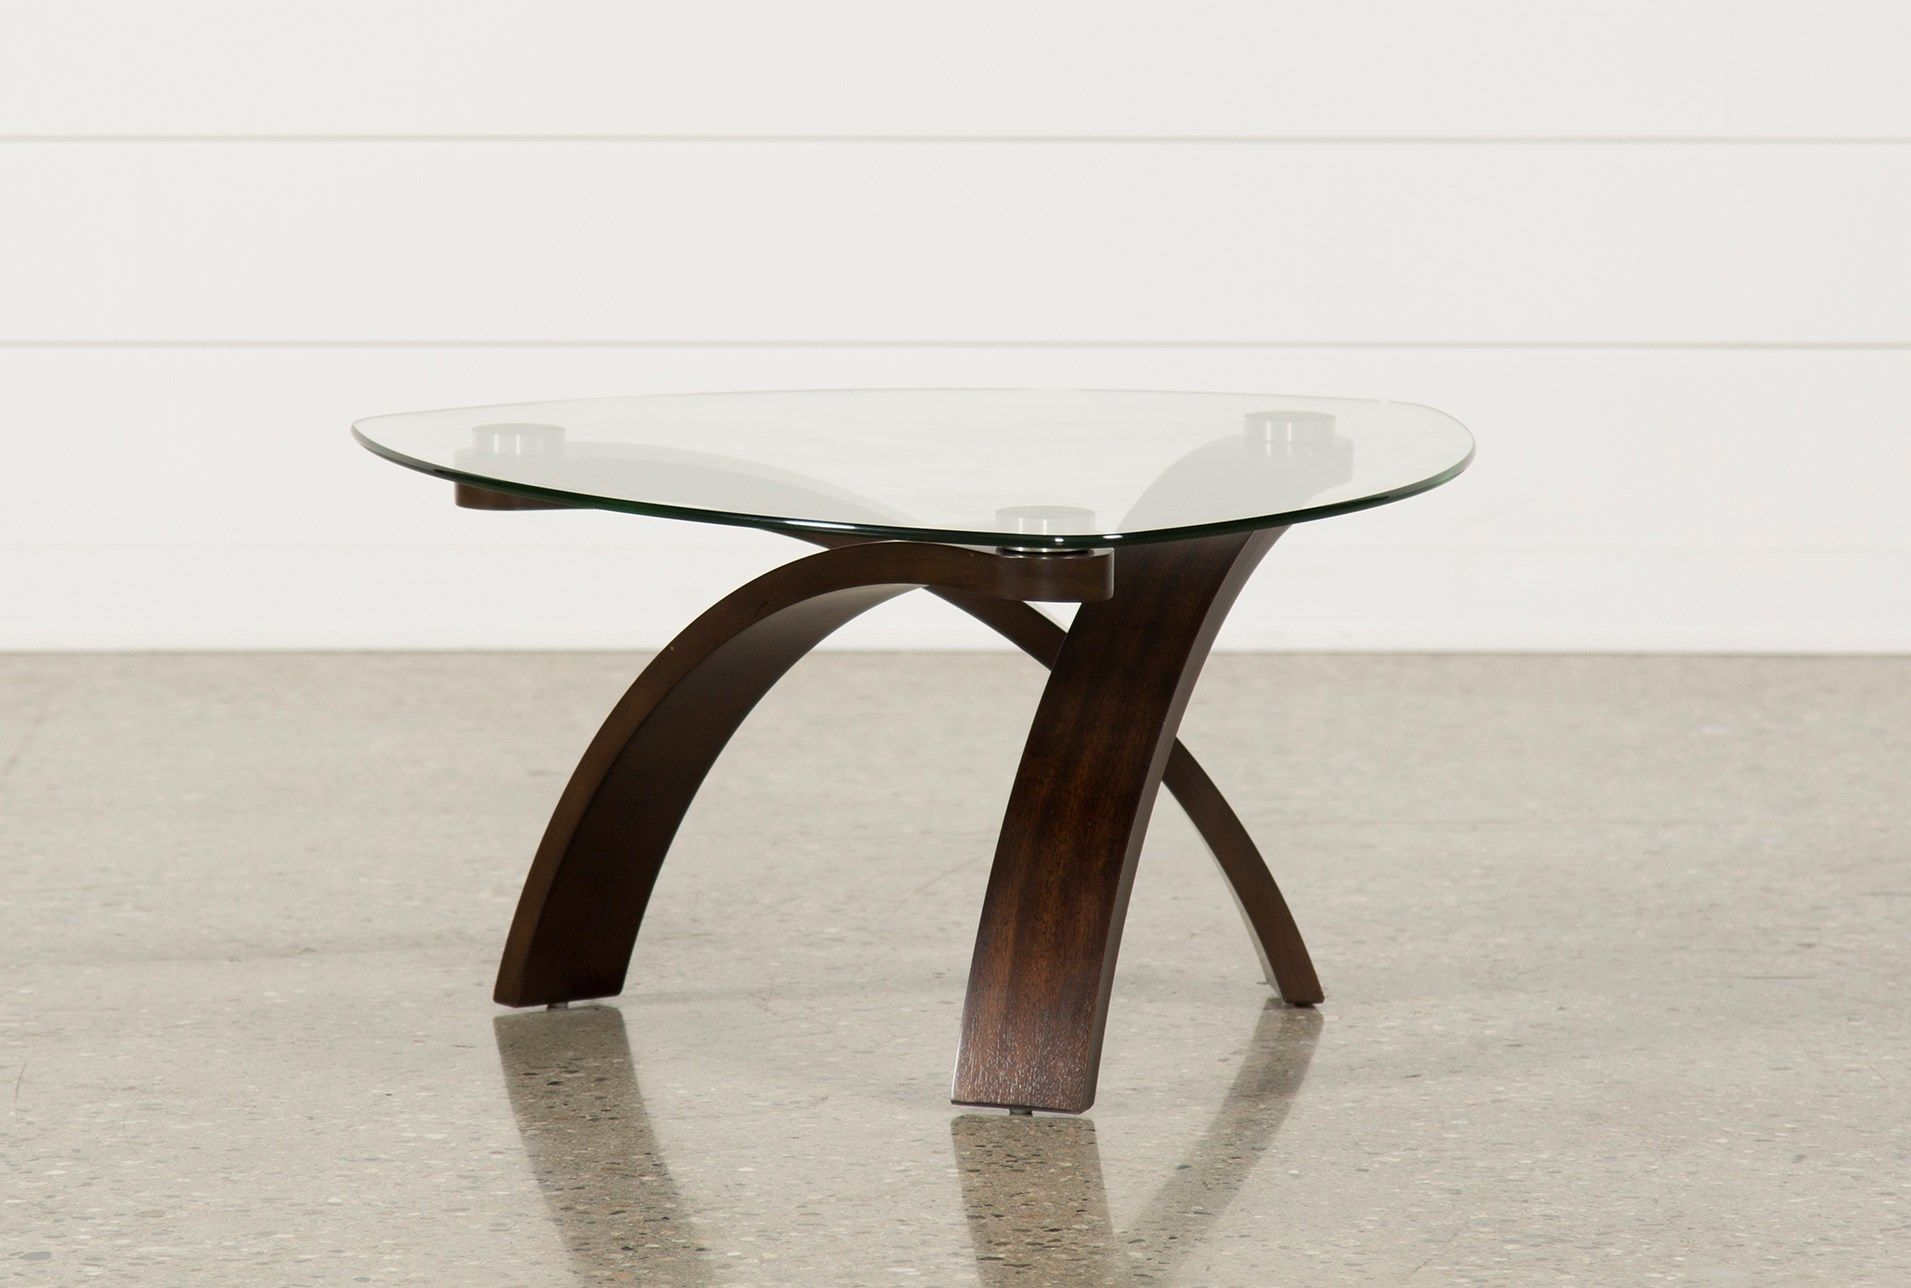 Allure Coffee Table Glass Coffee Table Coffee Table Table [ 1288 x 1911 Pixel ]